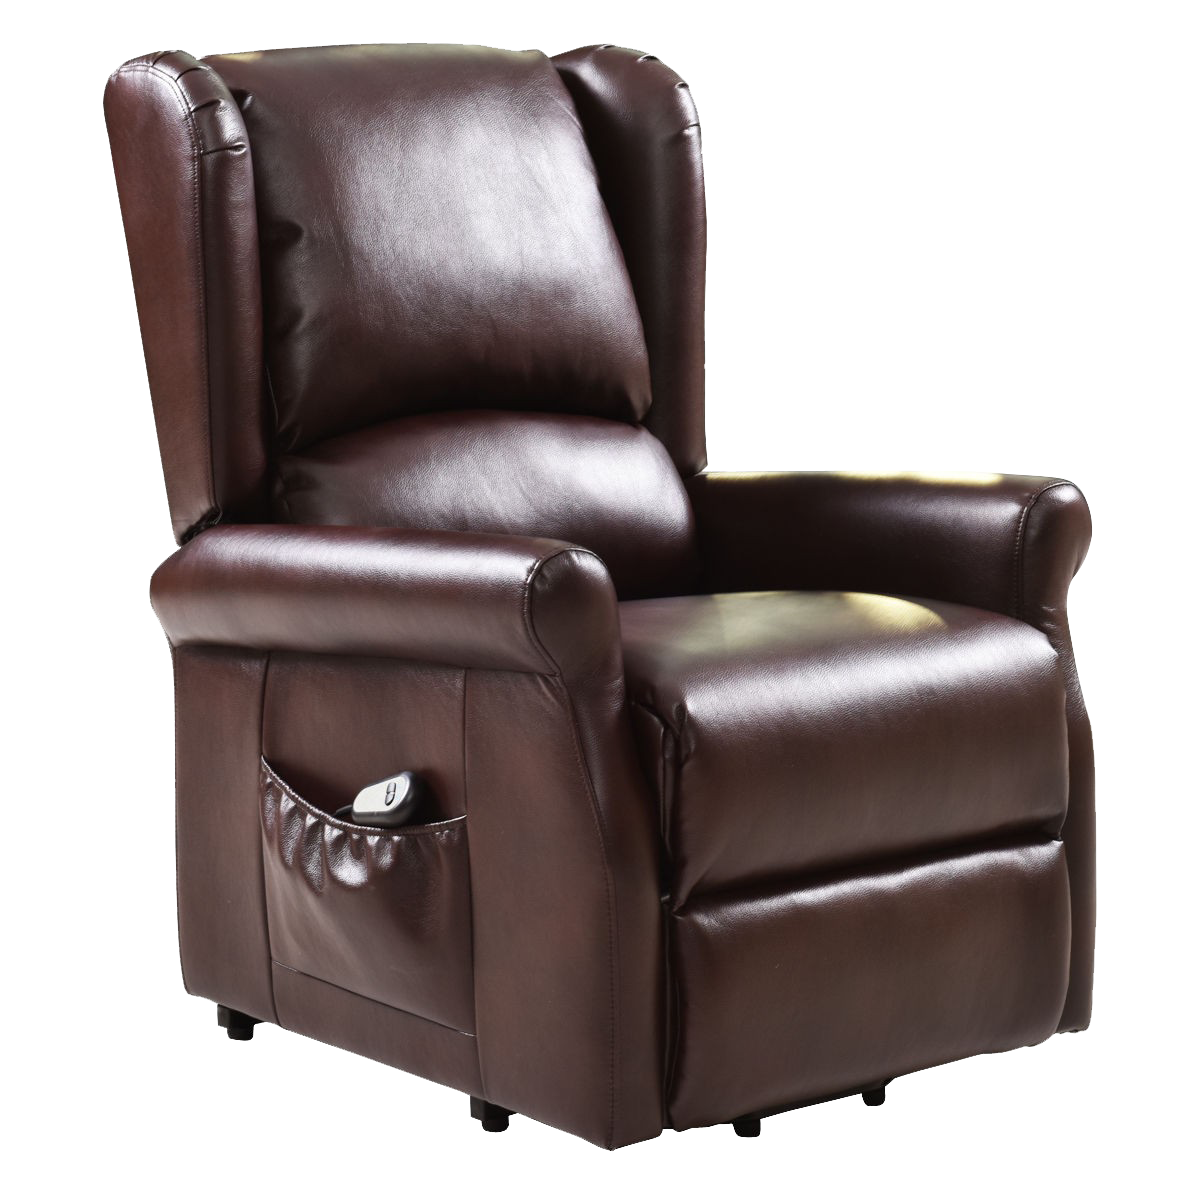 Brown Electric Lift Chair Recliner with Remote Control in